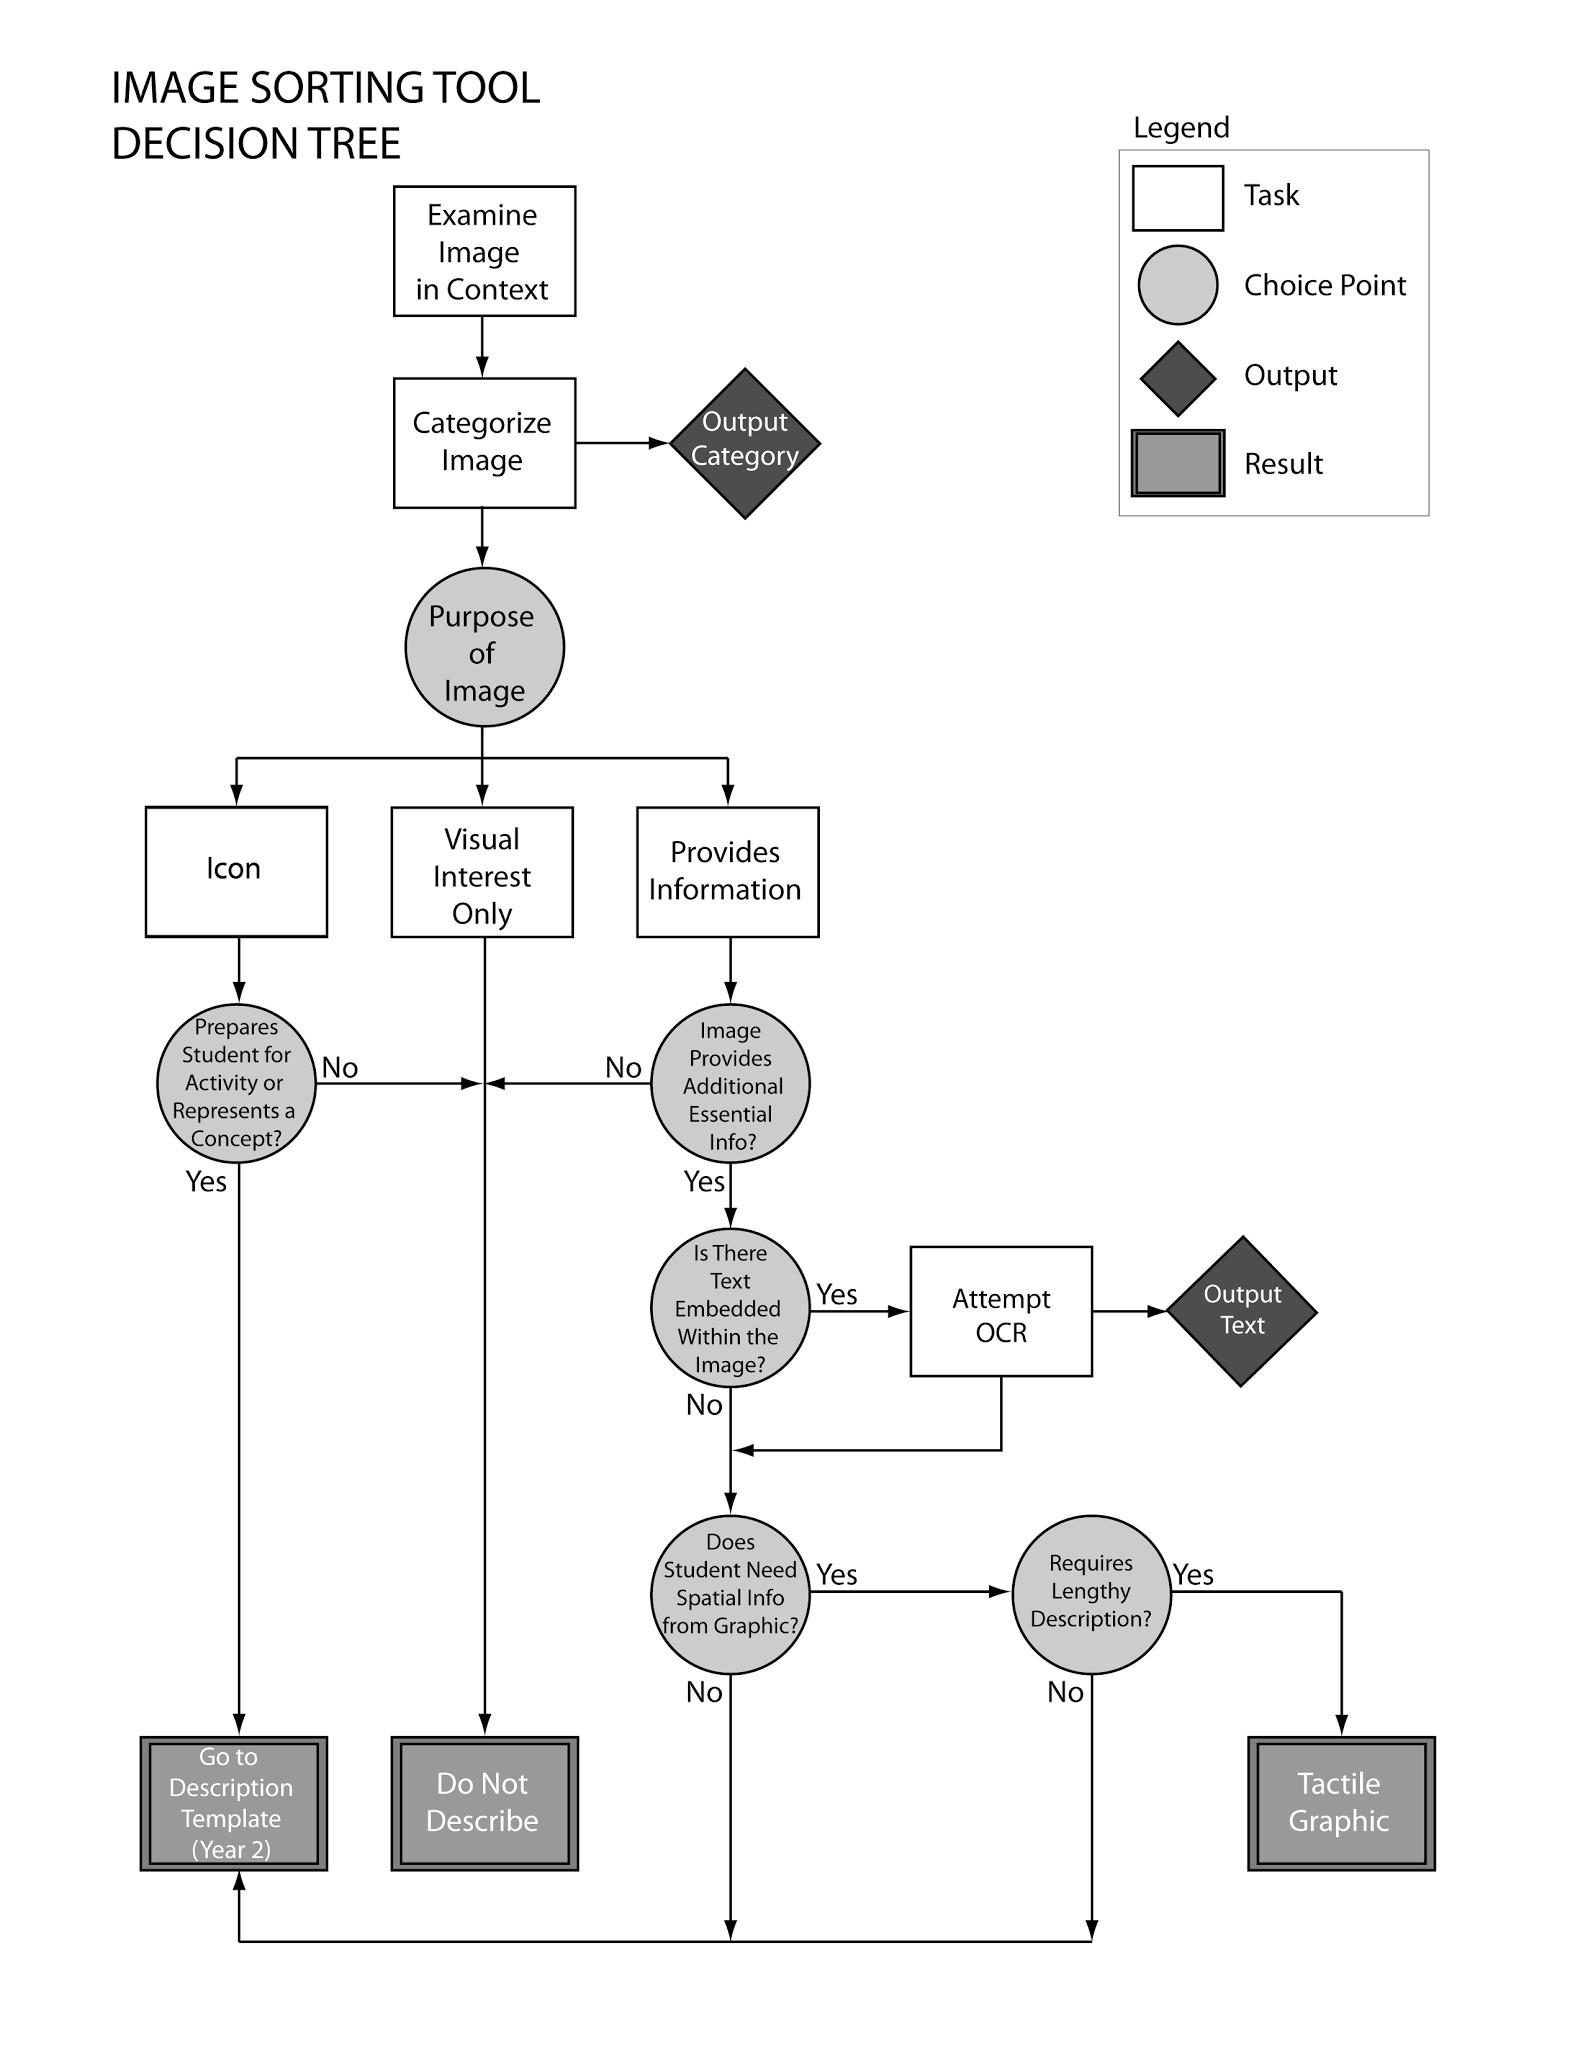 Process Flow Diagram Decision